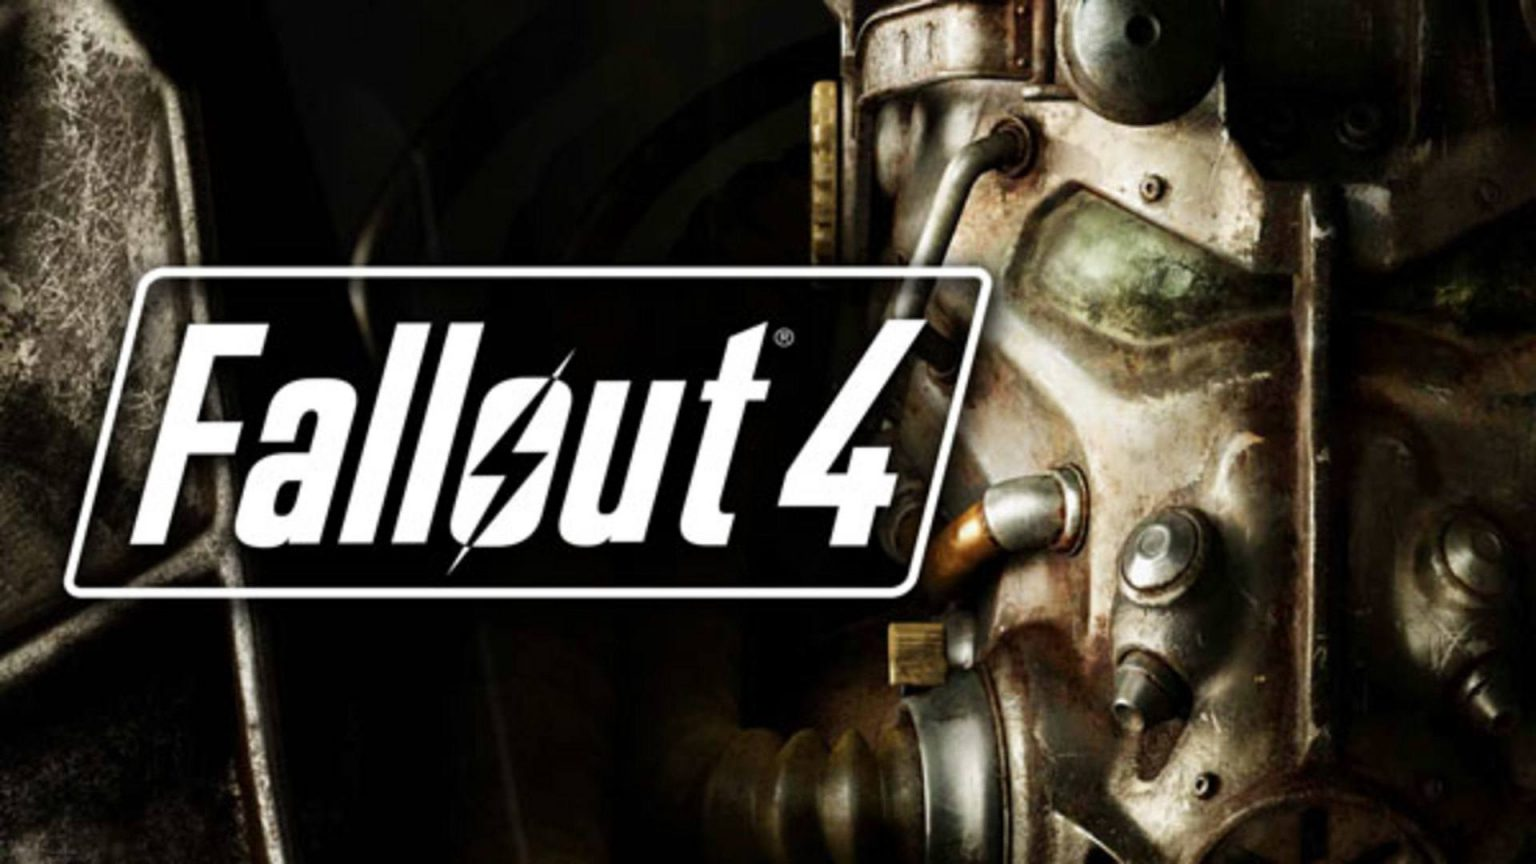 Fallout 4 Version Full Mobile Game Free Download